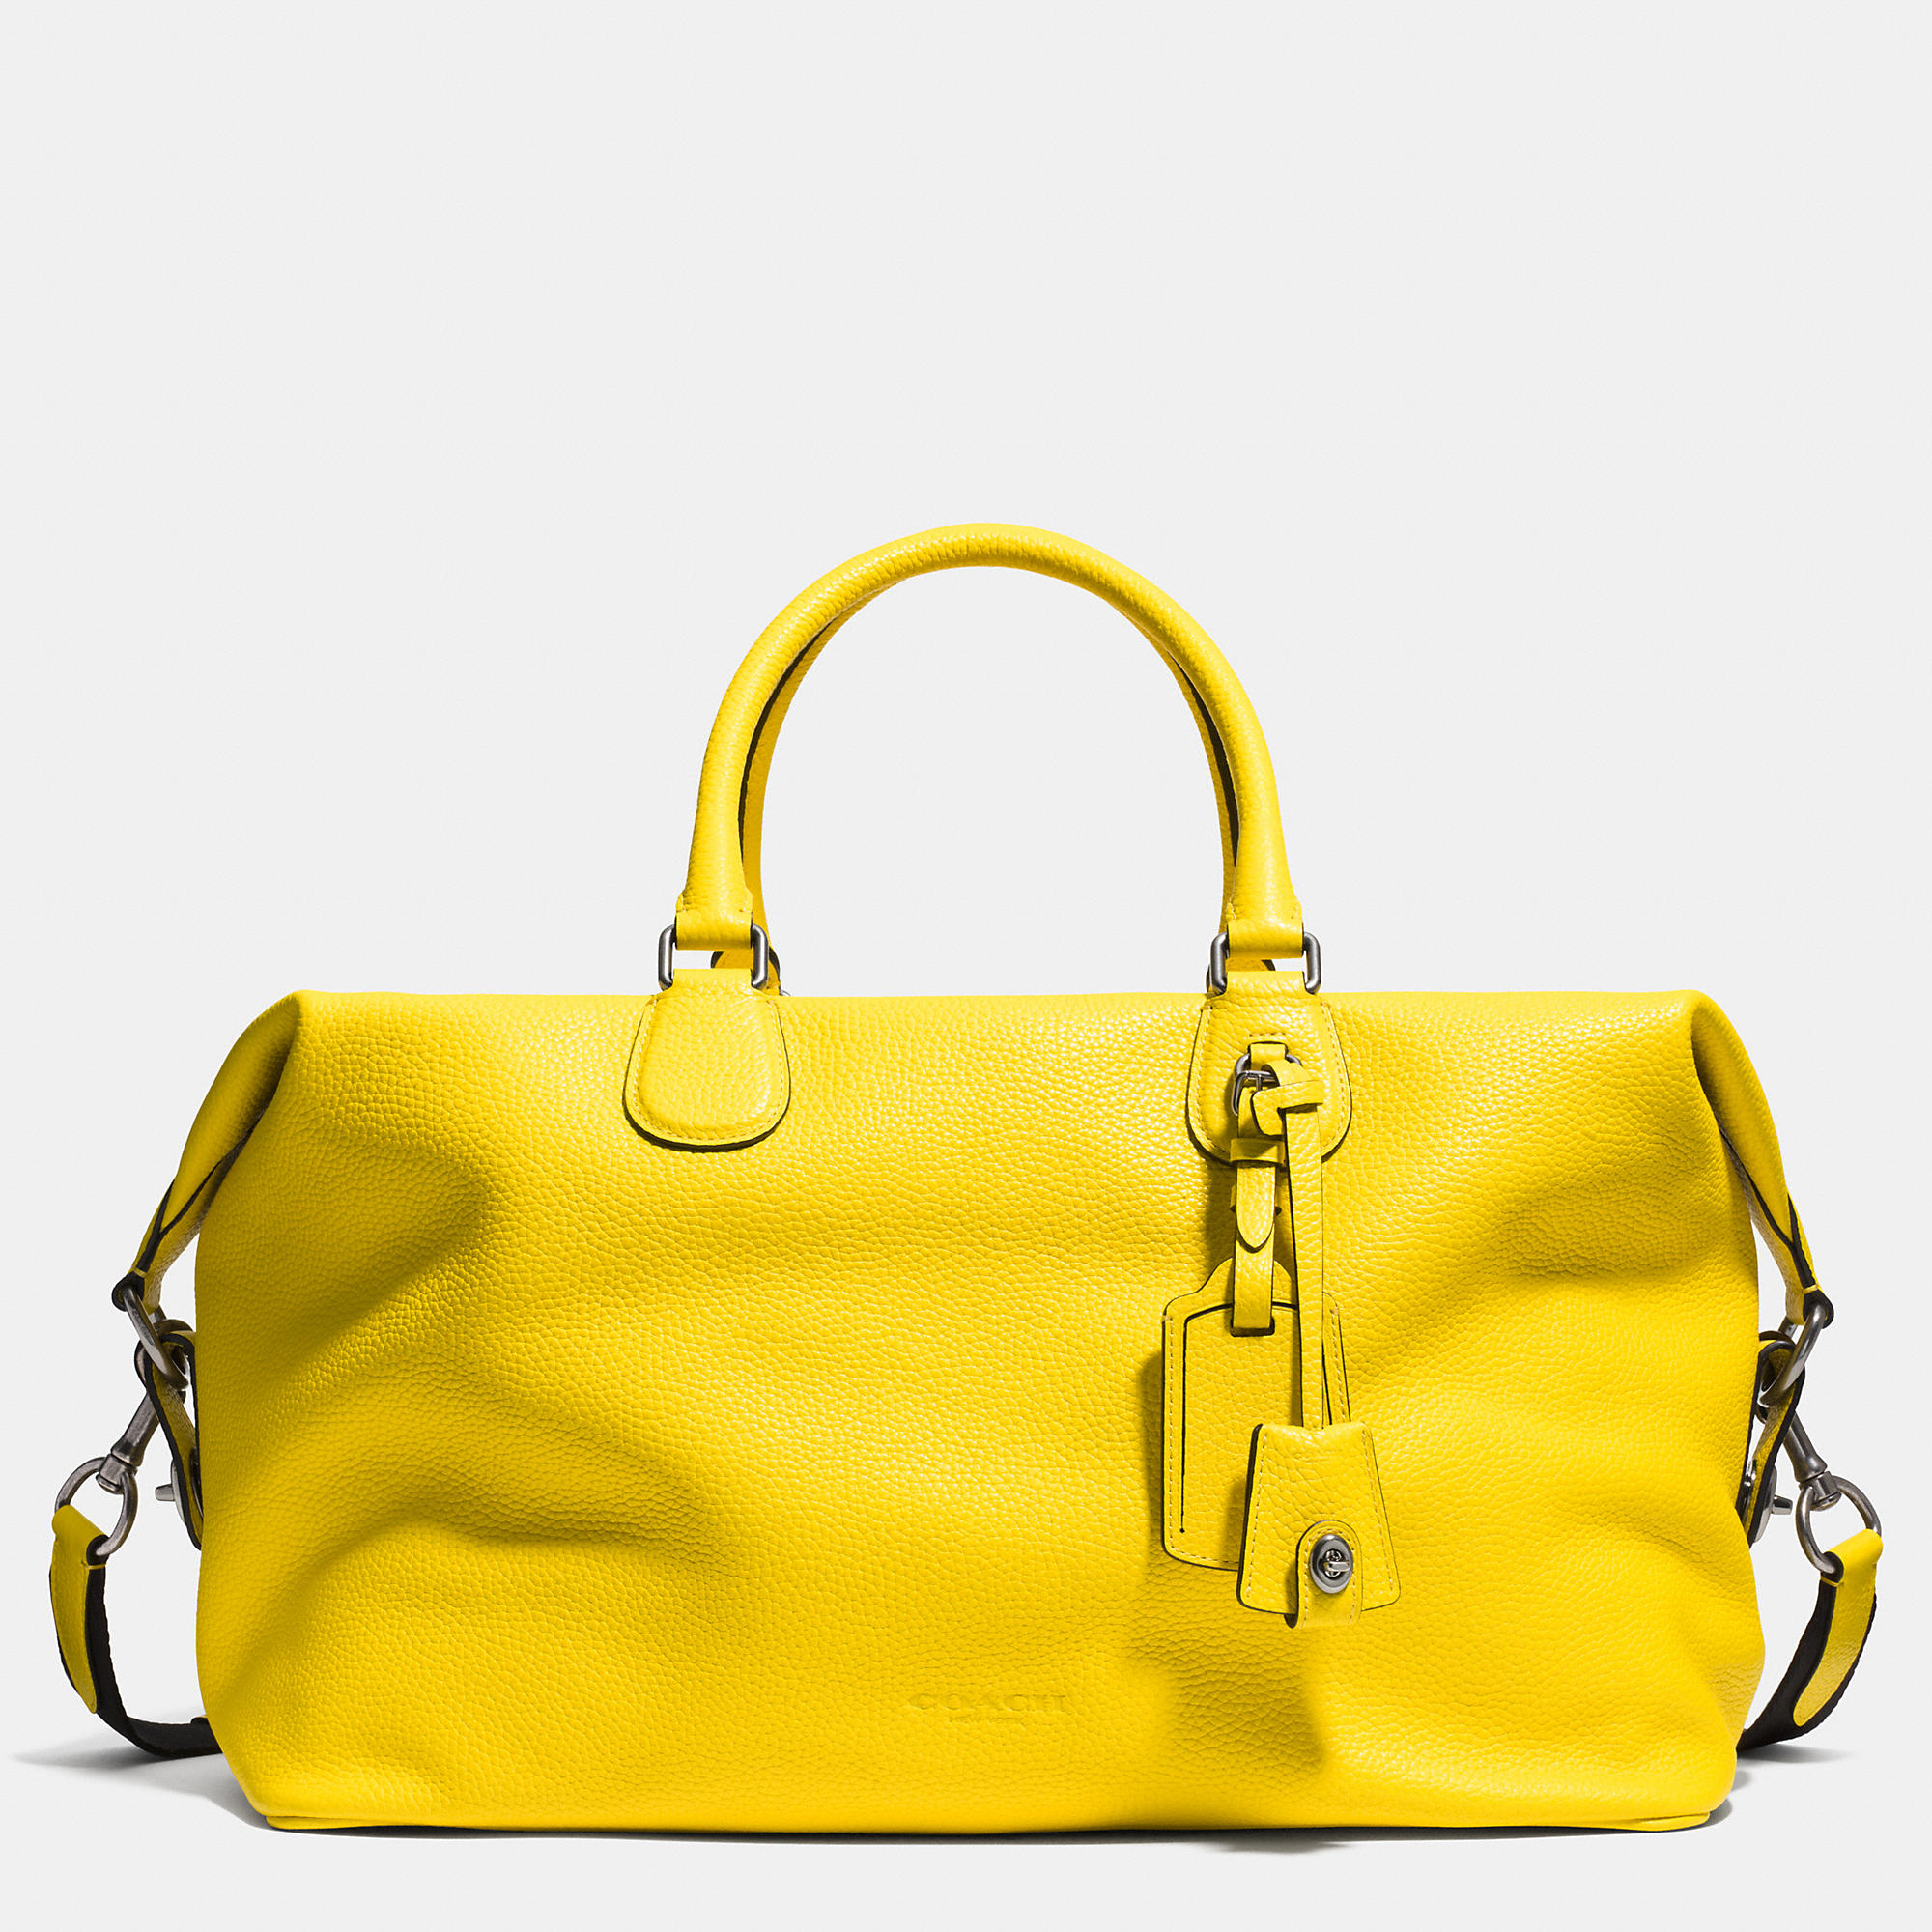 7602e93d06e9 Lyst - COACH Explorer Bag In Pebble Leather in Yellow for Men